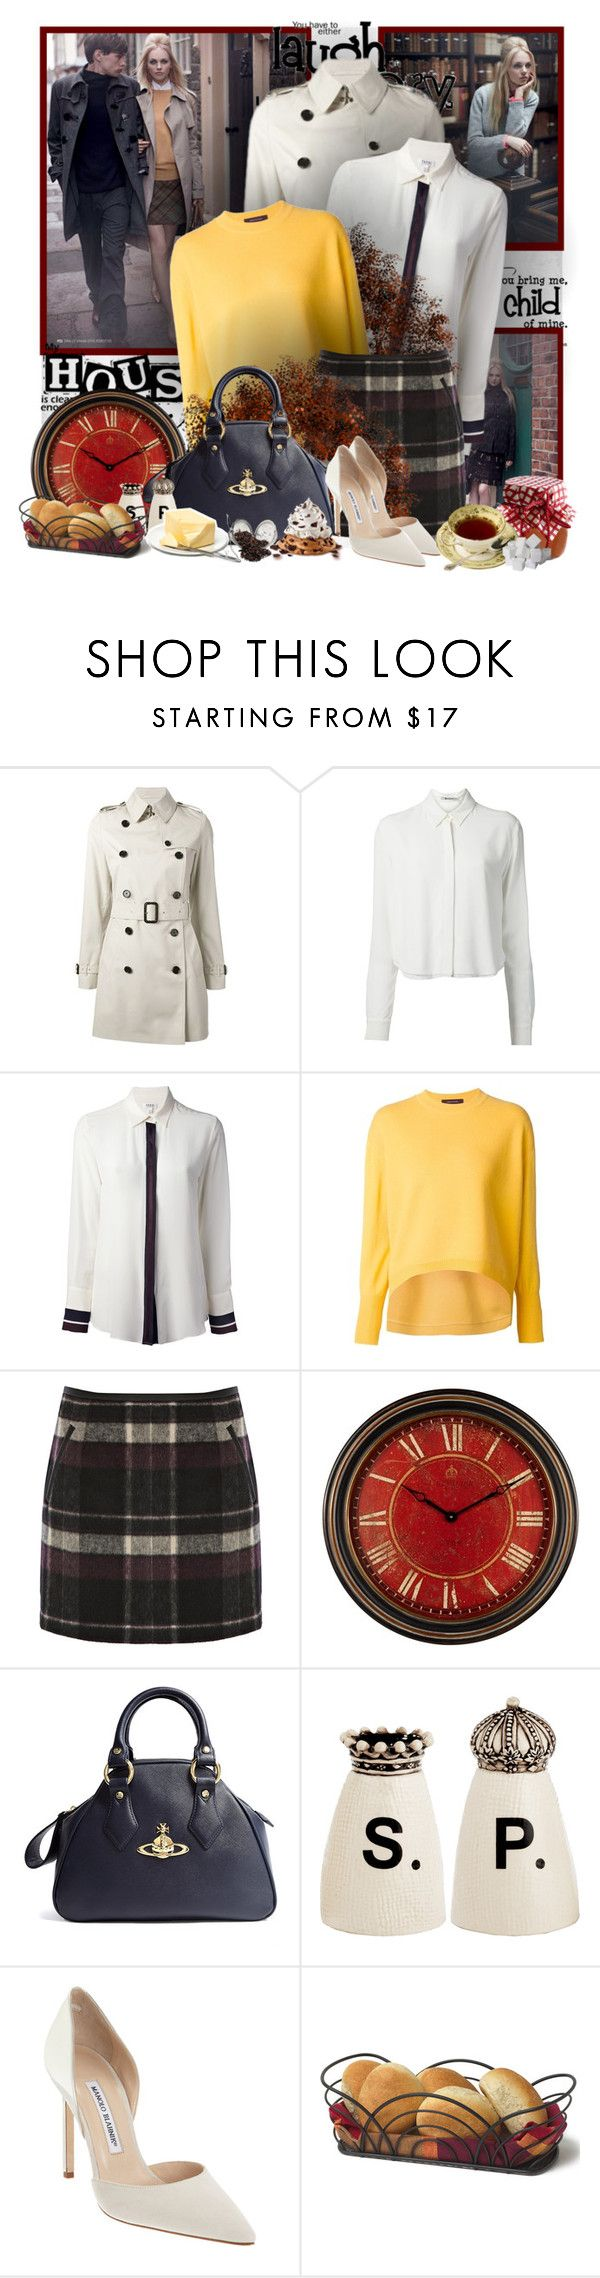 """""""№ 276"""" by olga3001 ❤ liked on Polyvore featuring Burberry, T By Alexander Wang, Nicole Farhi, Cédric Charlier, Oasis, Uttermost, Vivienne Westwood, Magenta and Manolo Blahnik"""